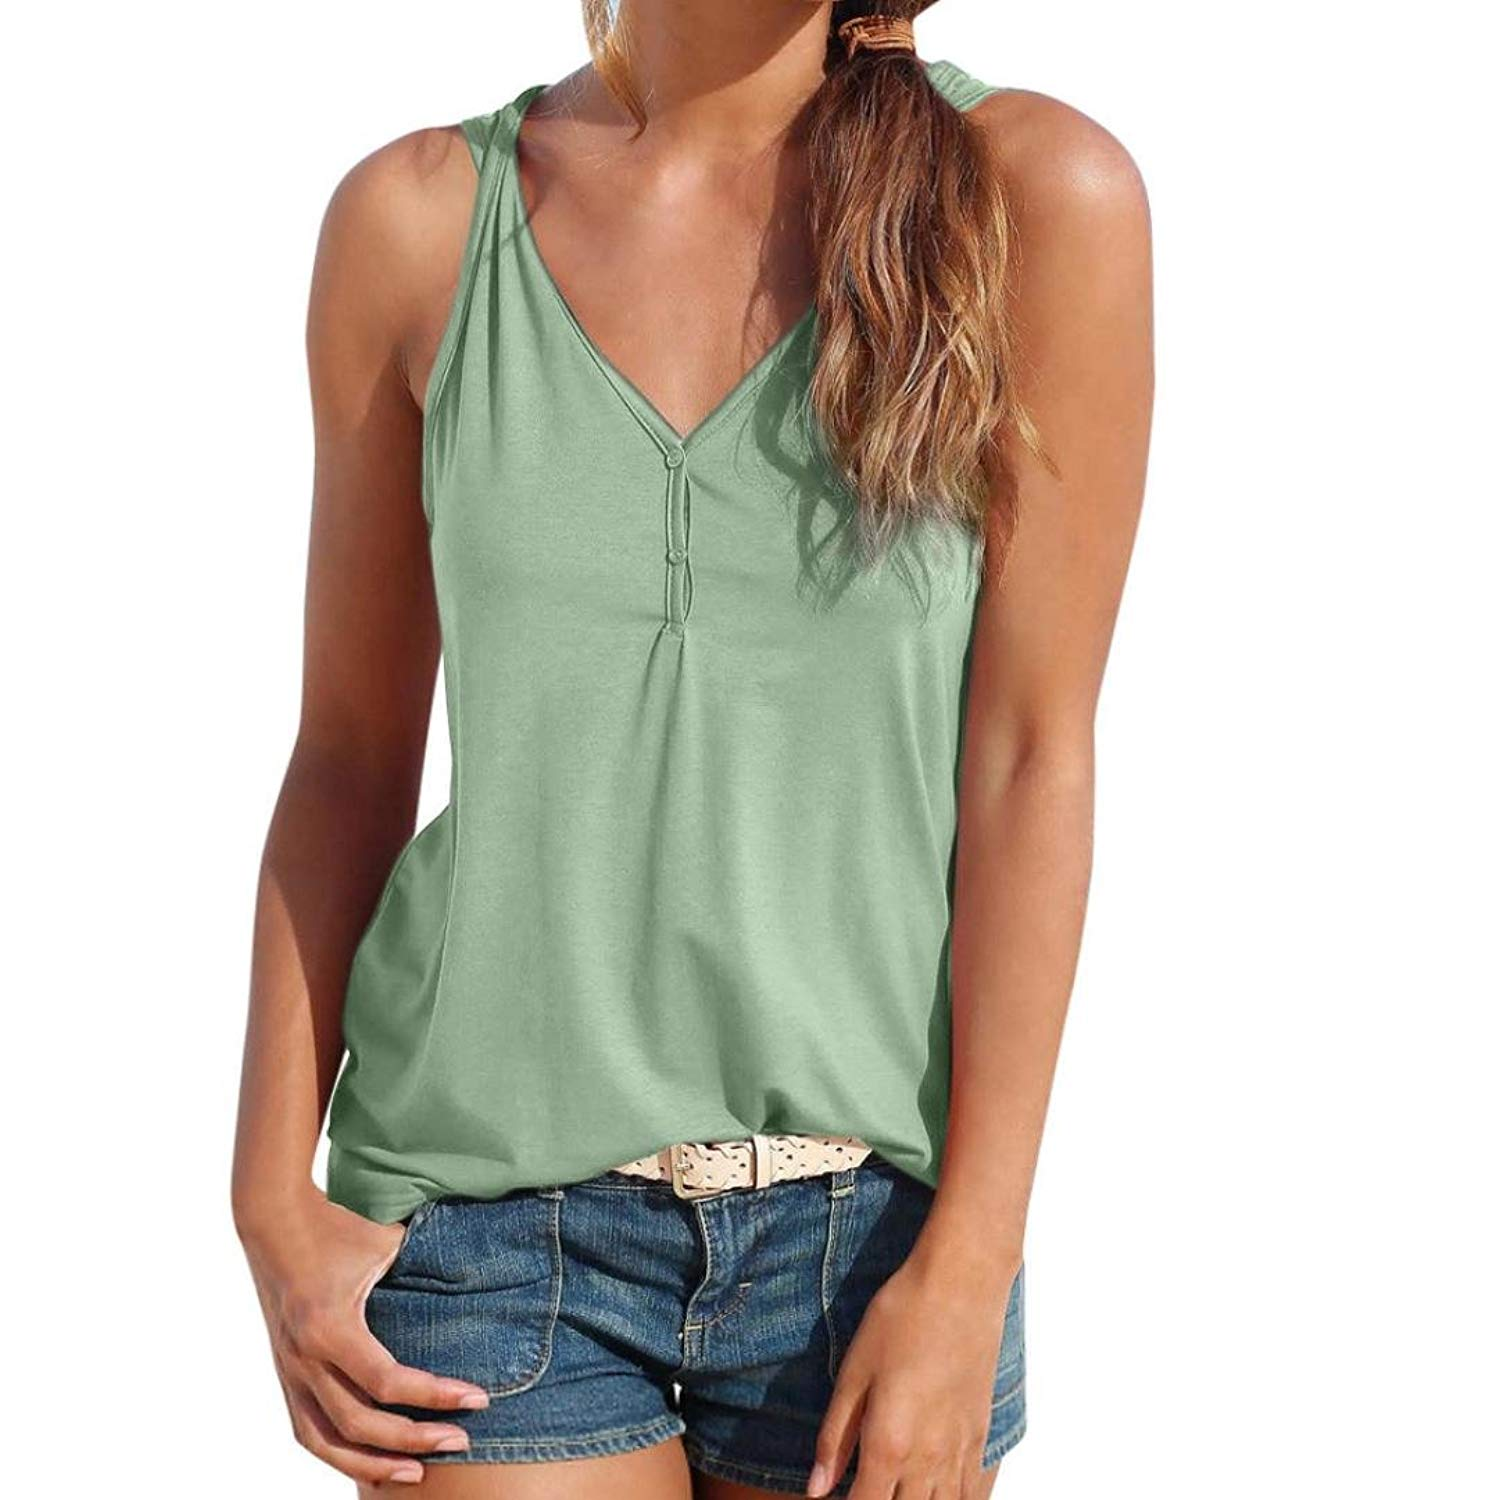 WM & MW Summer Womens Vest Top Sleeveless Solid Sexy Henley Button V-Neck Shirt Blouse Casual Tank Tops